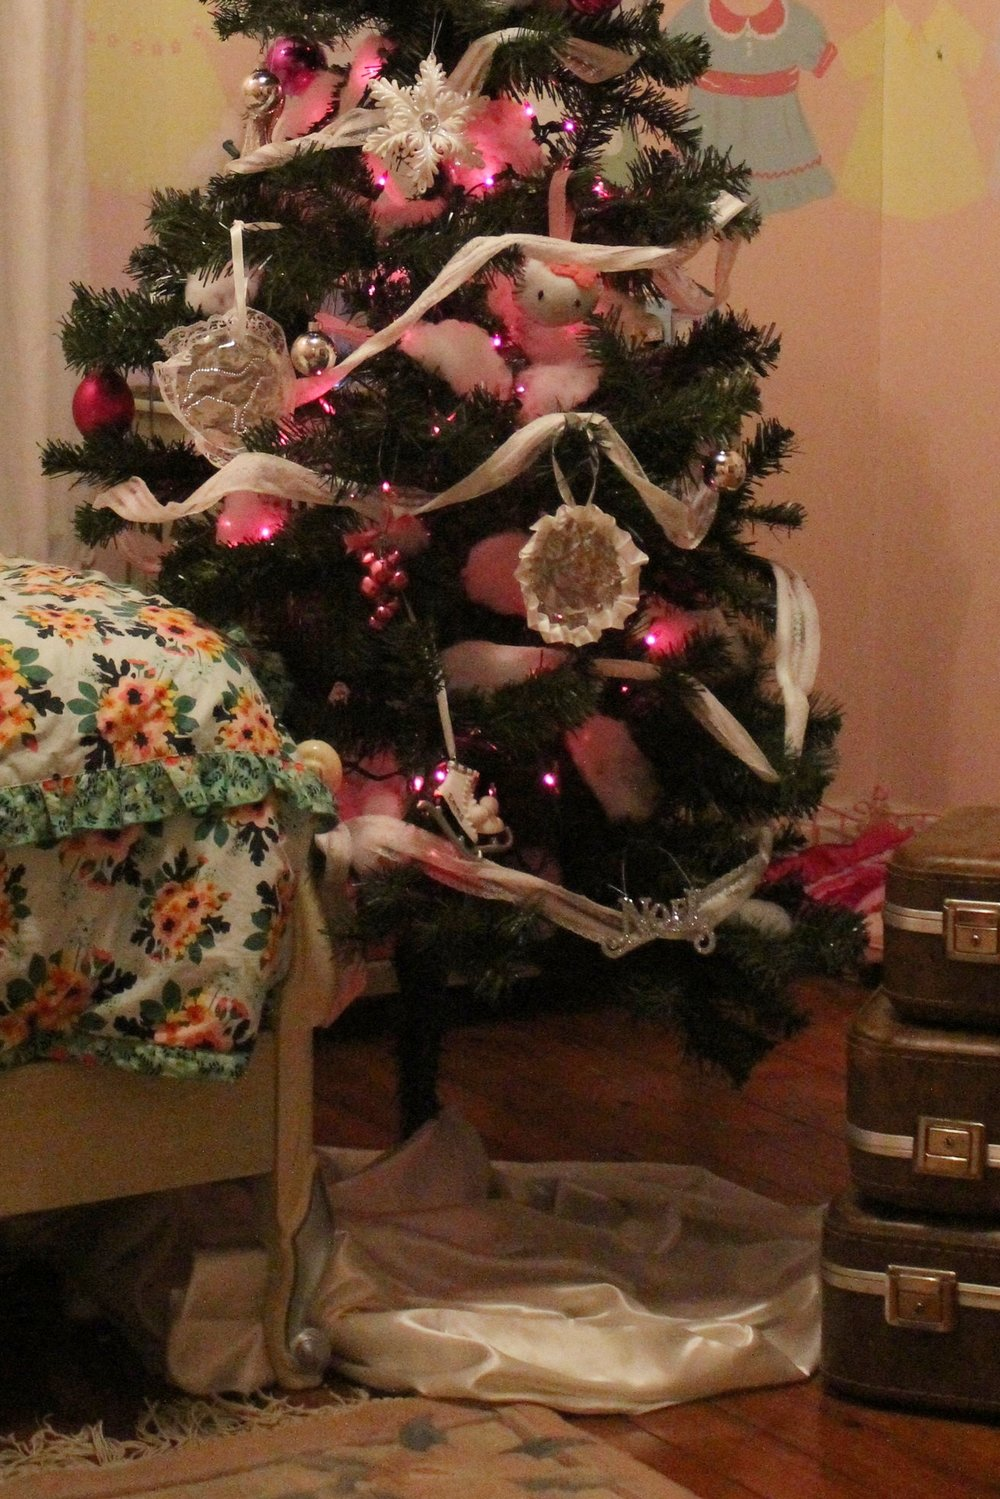 How to create a girl's pink dream tree this Christmas.